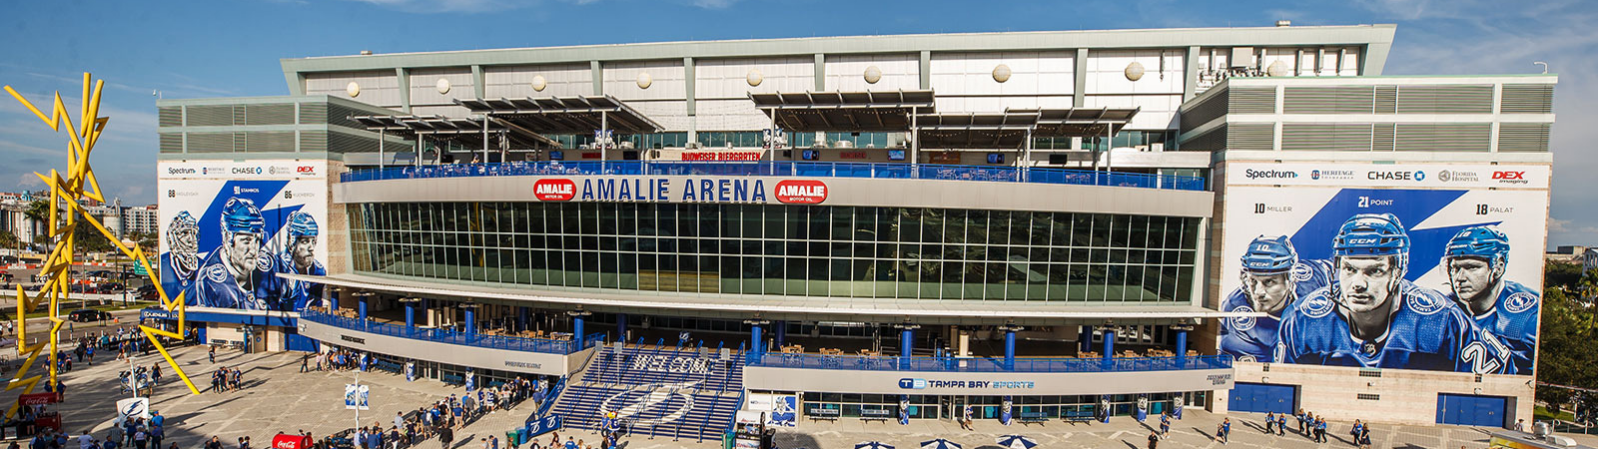 Amalie Arena, in Tampa FL